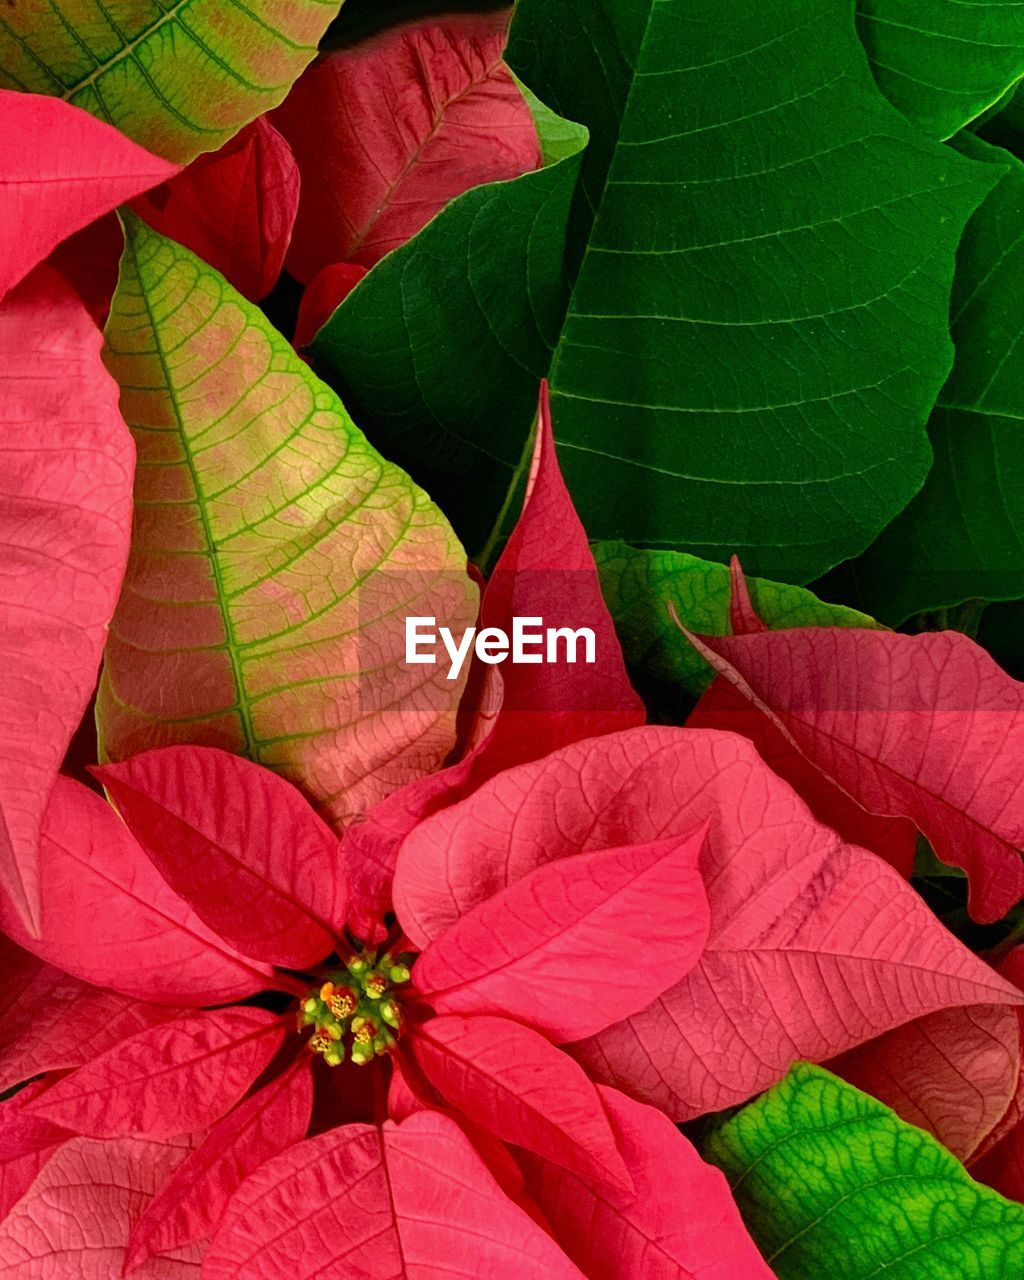 leaf, plant part, red, plant, flower, close-up, nature, beauty in nature, no people, green color, flowering plant, growth, day, outdoors, leaves, leaf vein, vulnerability, fragility, freshness, high angle view, flower head